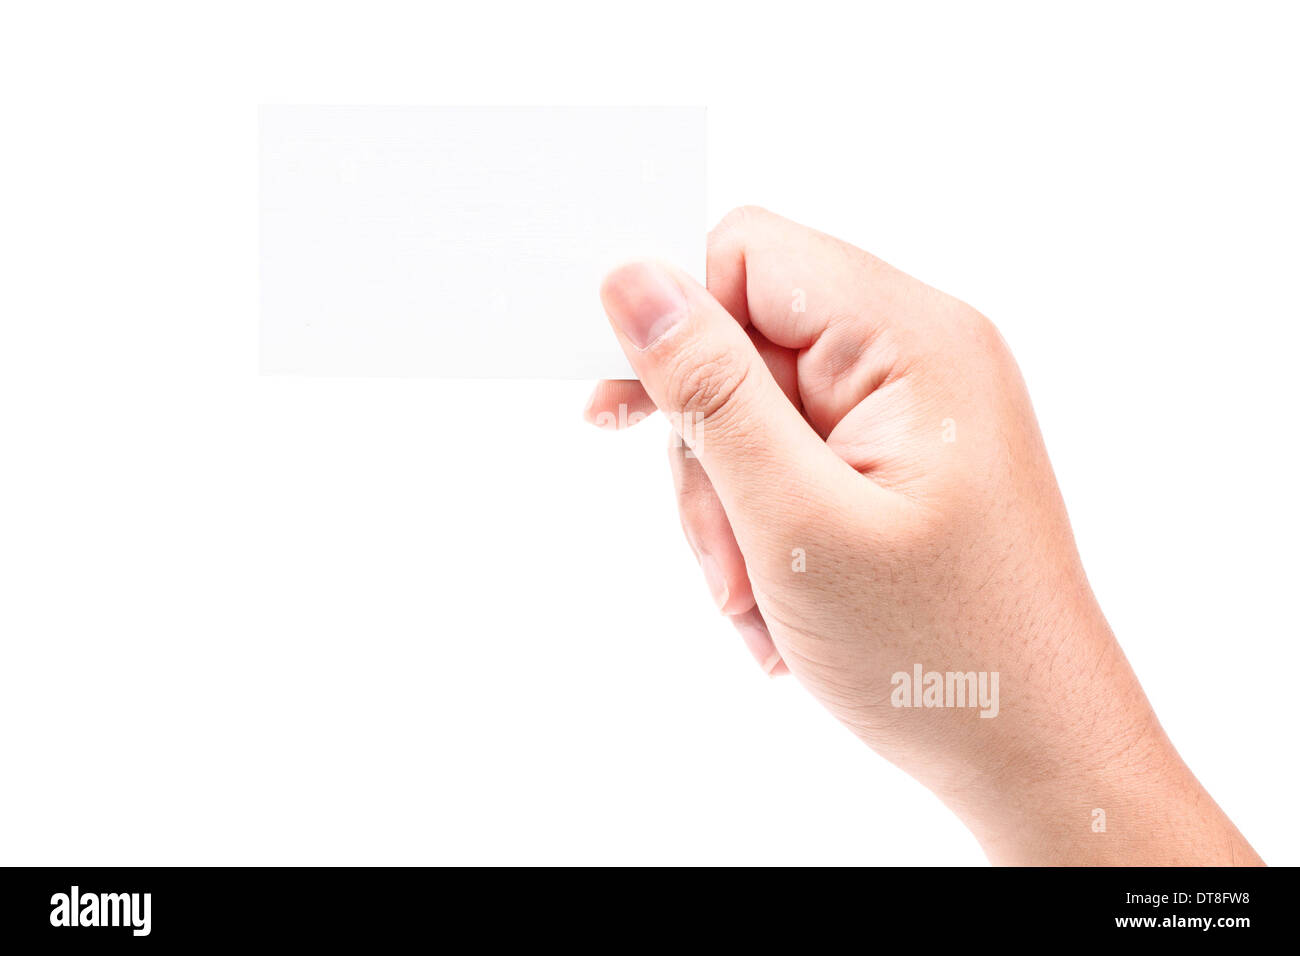 Bussiness Card on Hand - Stock Image